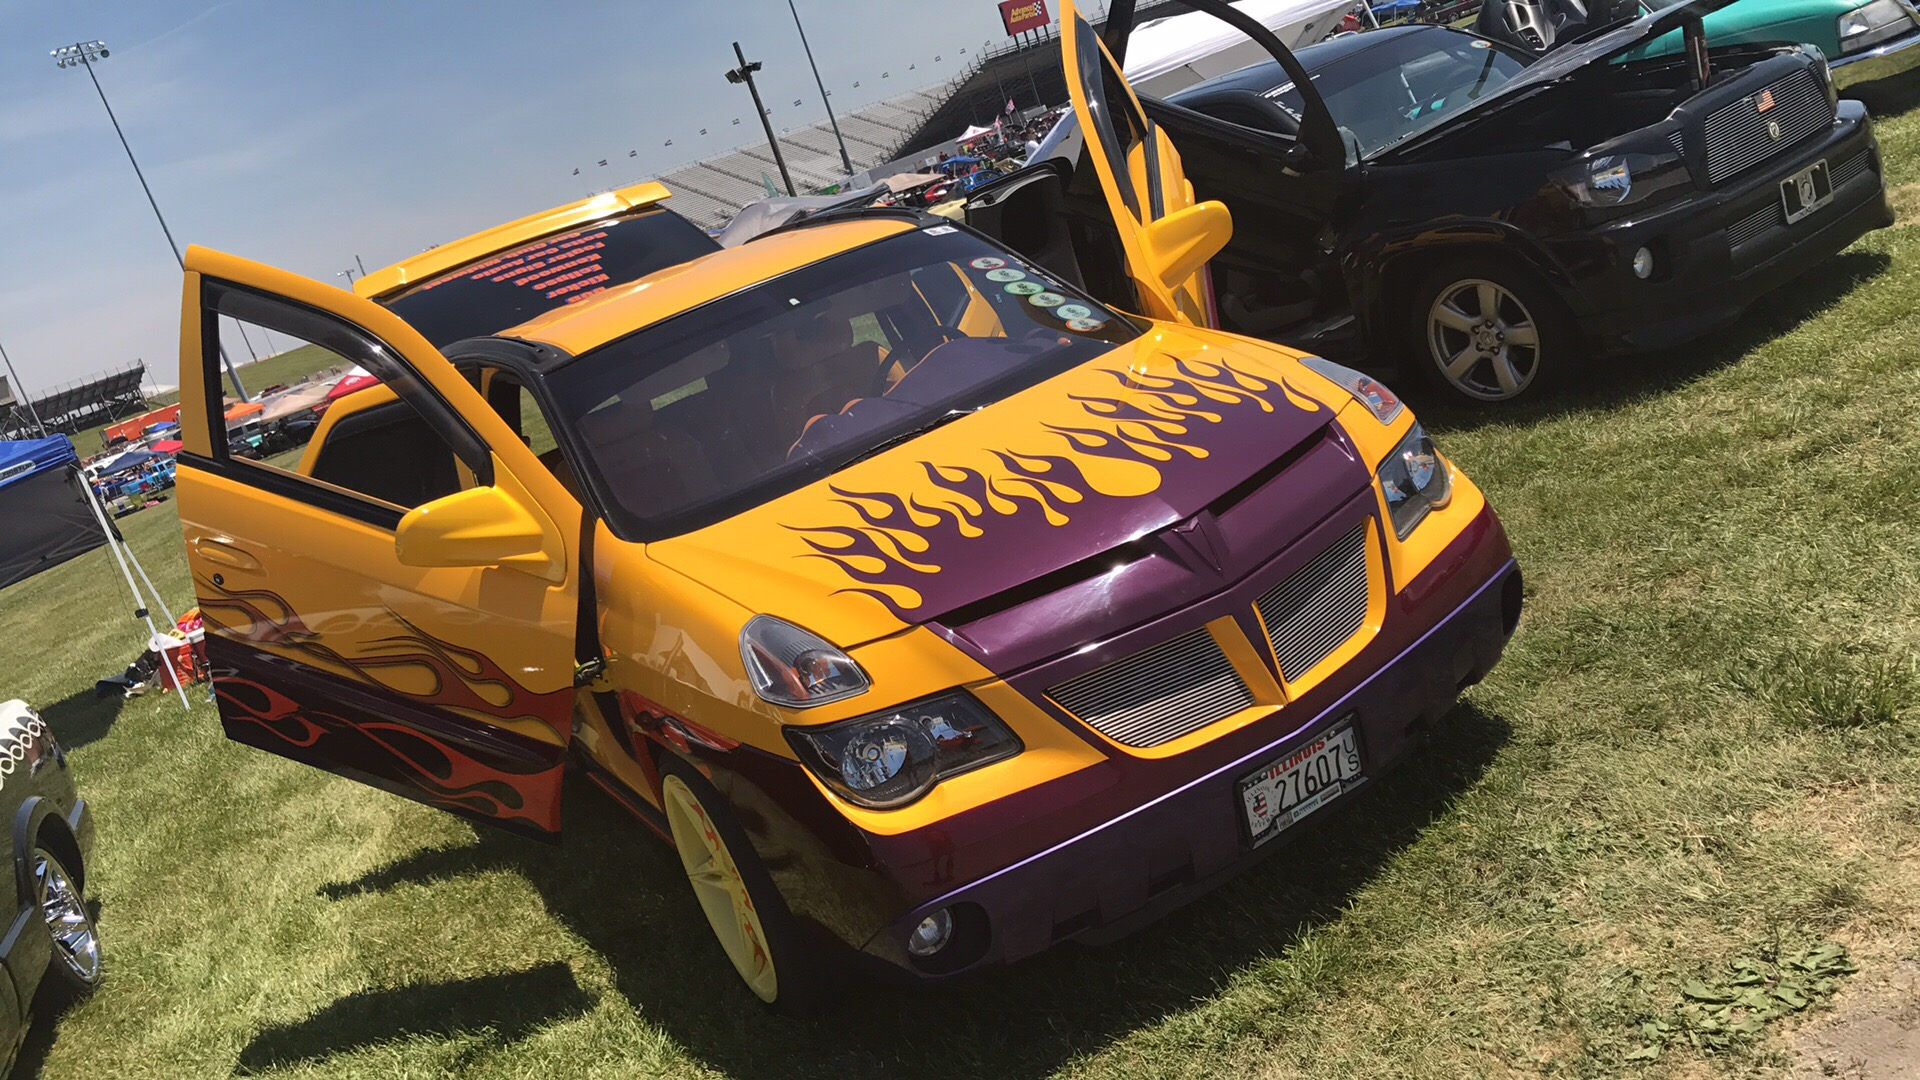 shortbuss 2002 Pontiac Aztek's Photo Gallery at CarDomain